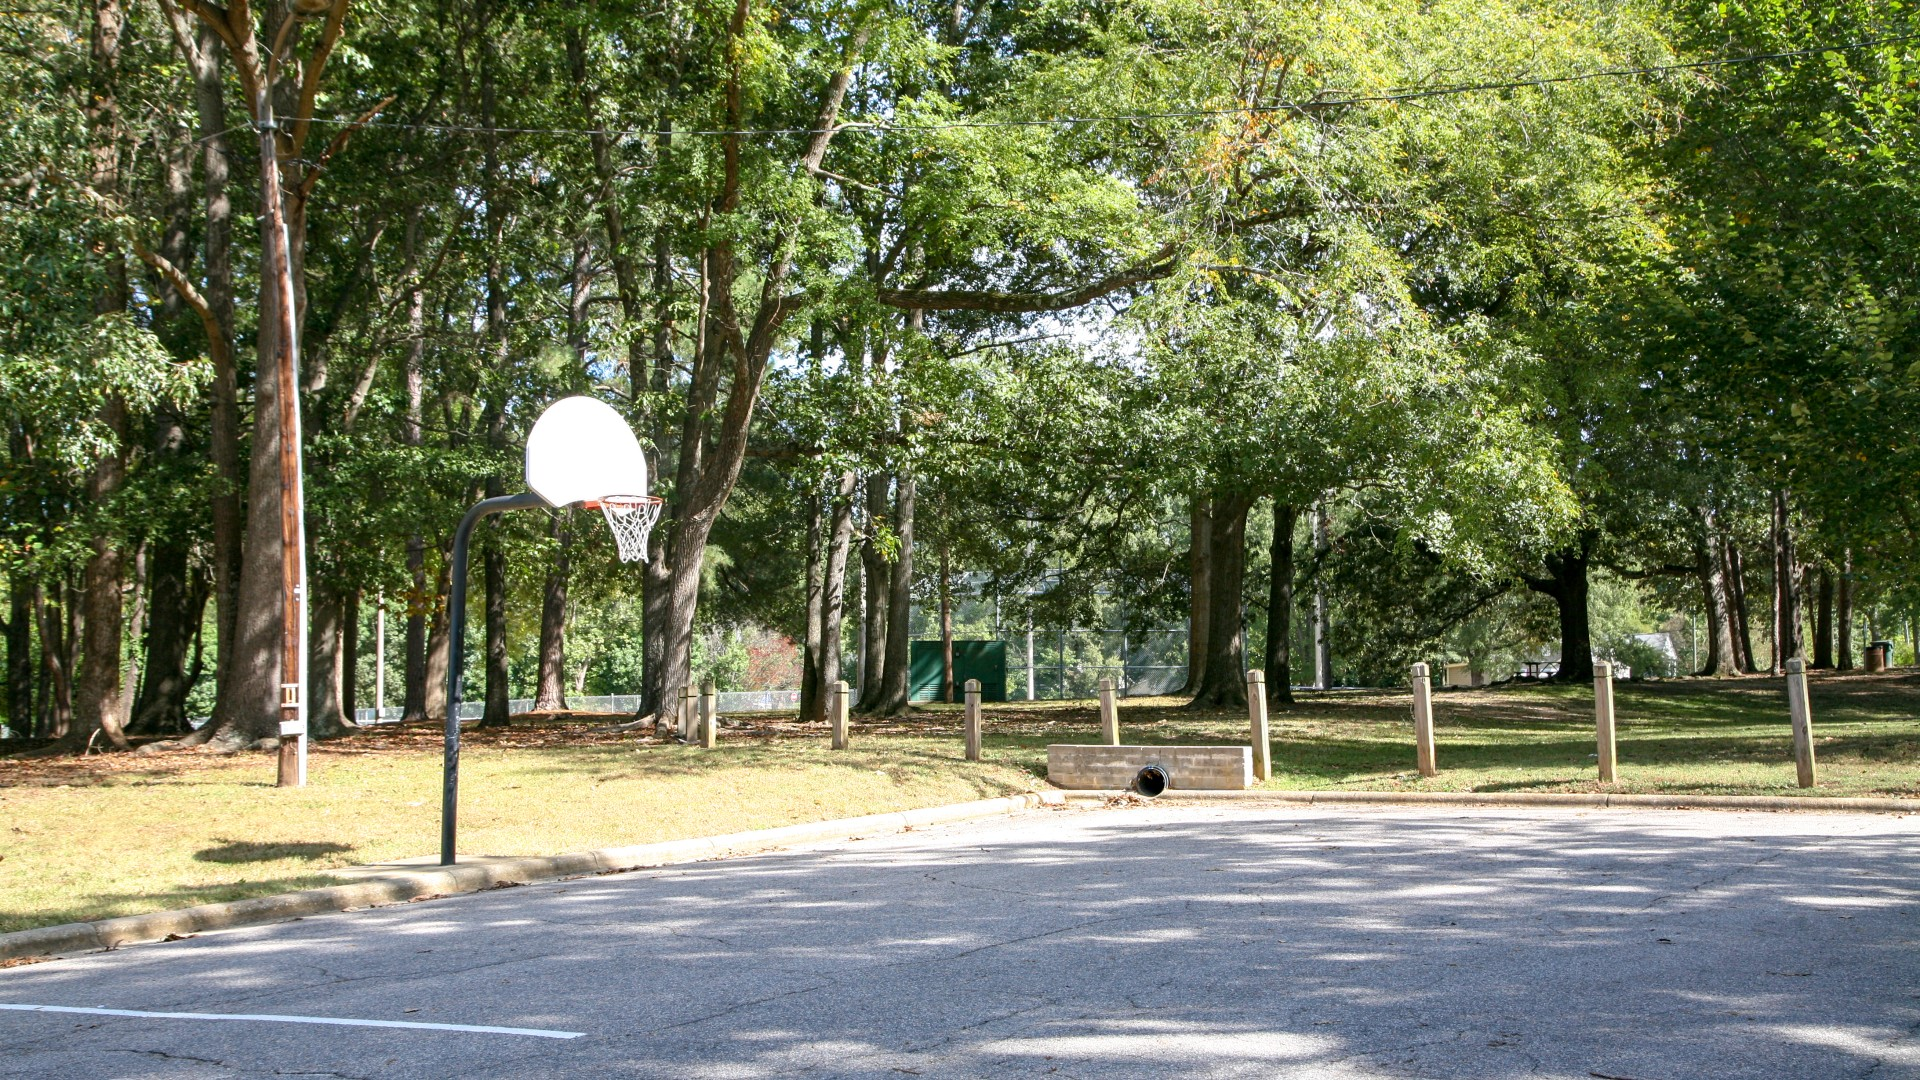 Outdoor basketball court with two hoops and concrete surface and Oakwood Park